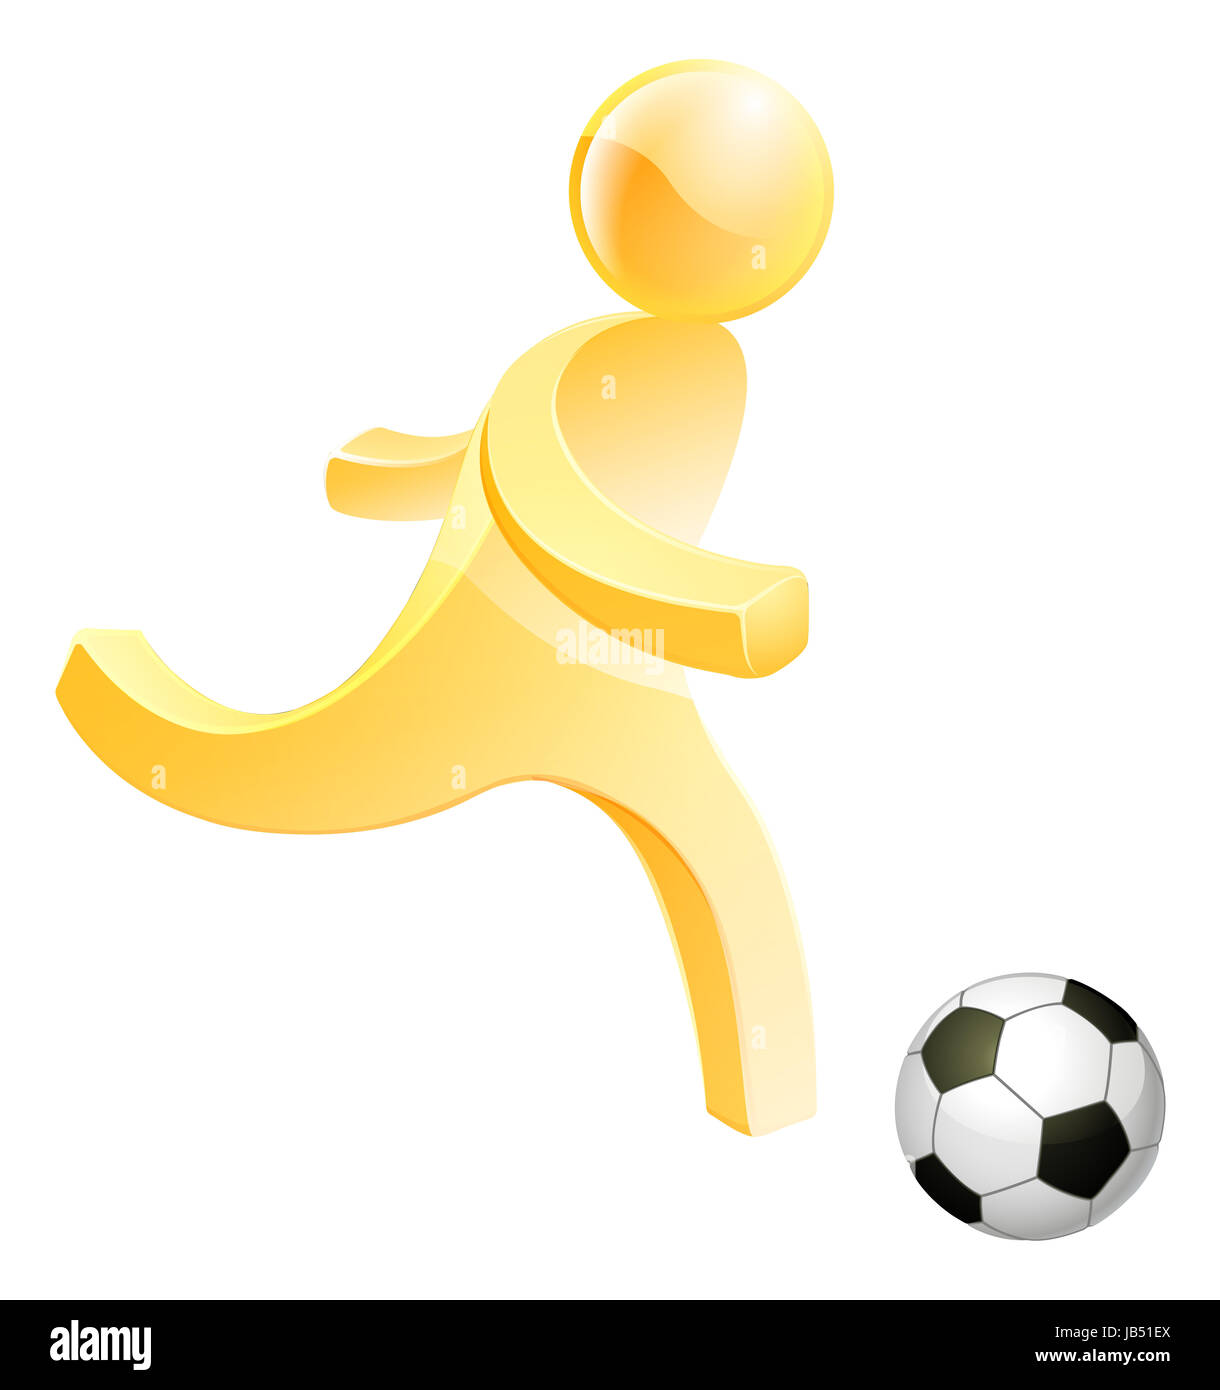 Soccer football person, a stylised person about to kick a soccer or foot ball - Stock Image